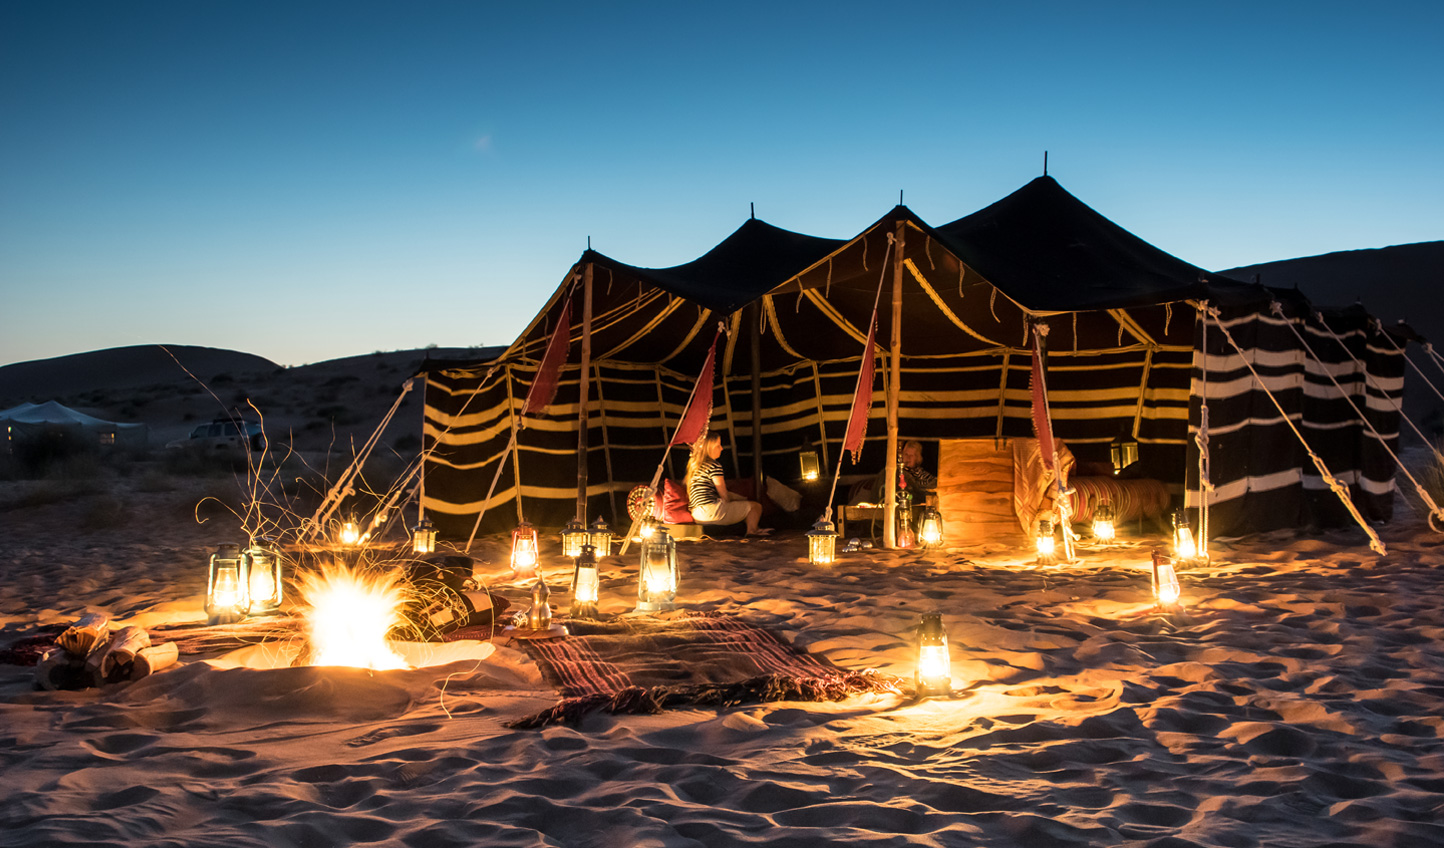 Travel deep into the desert for an overnight camping sojourn like no other